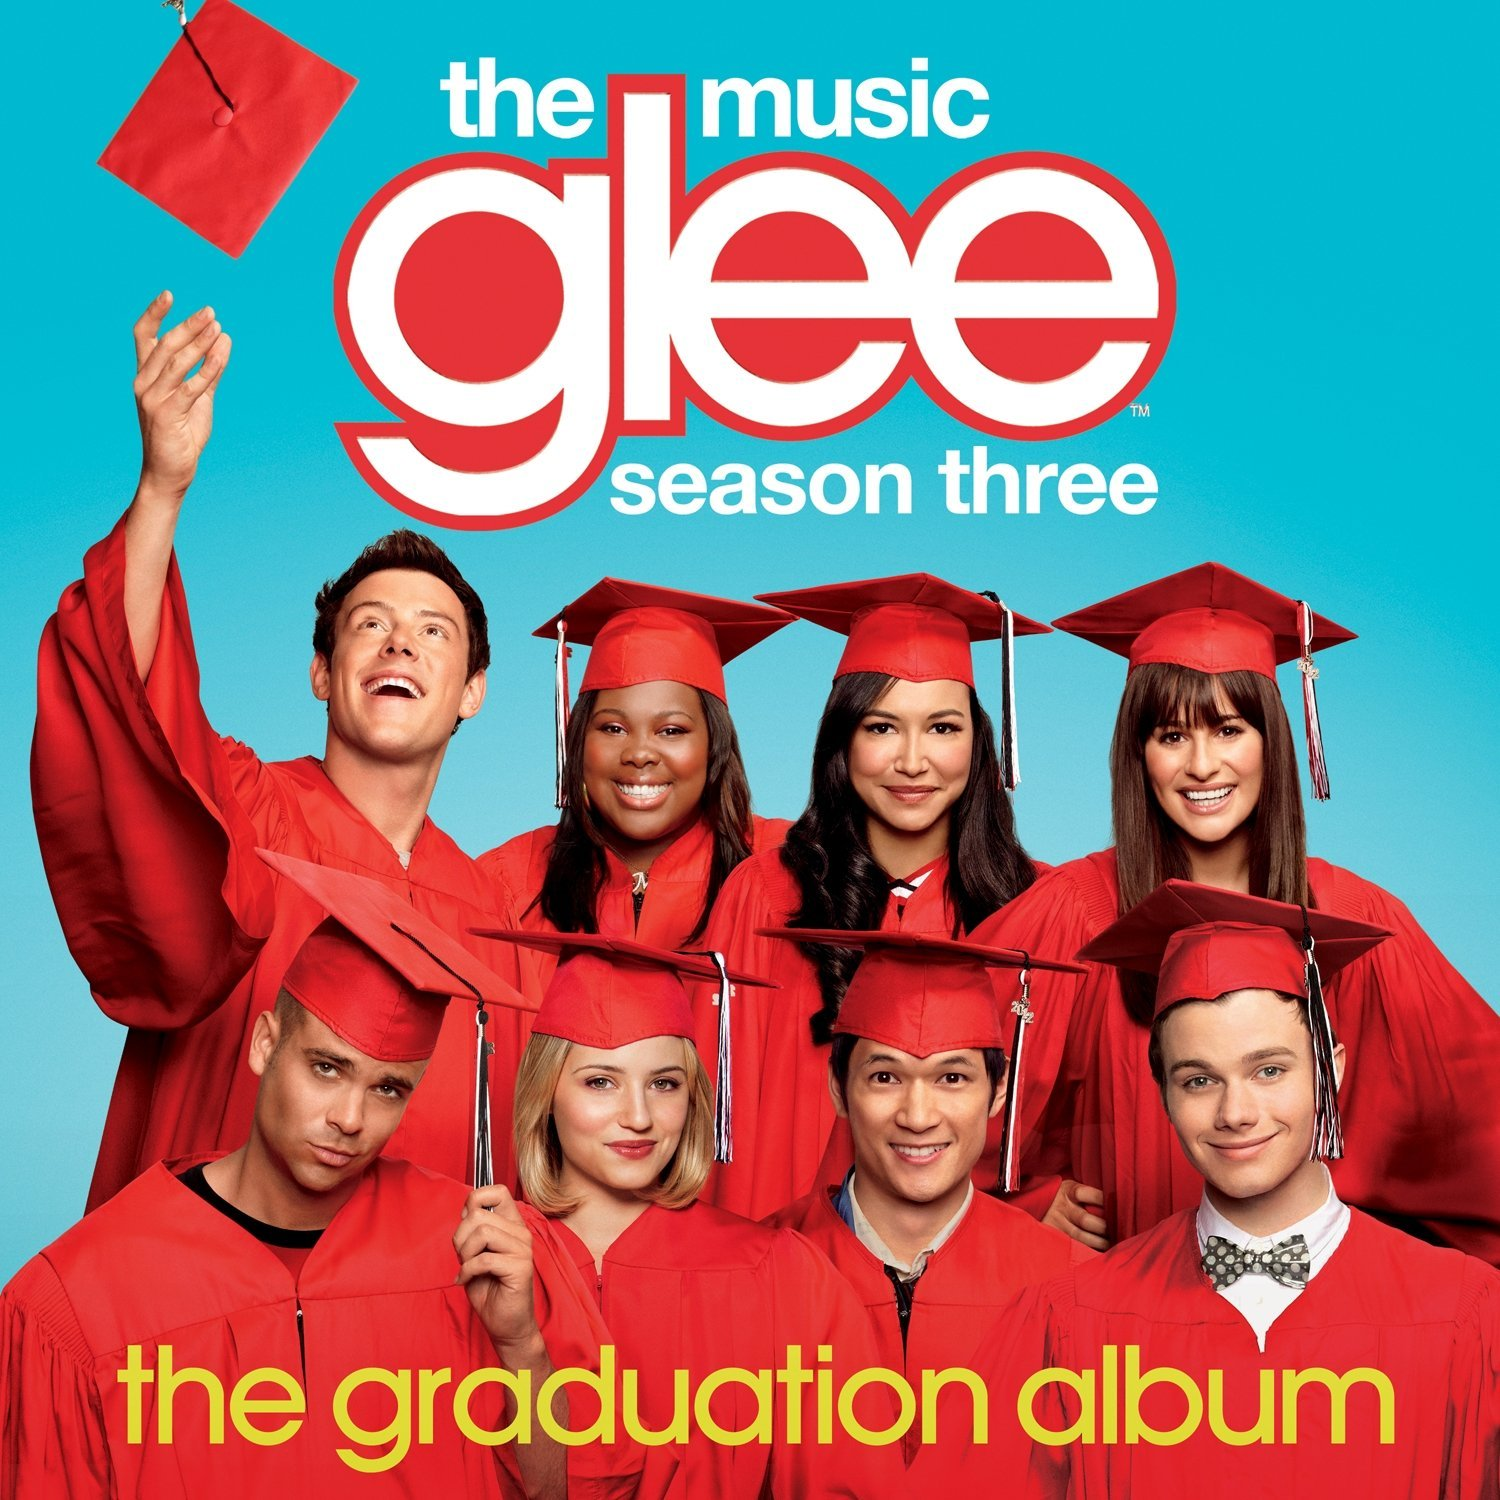 CD Glee: The Music, The Graduation